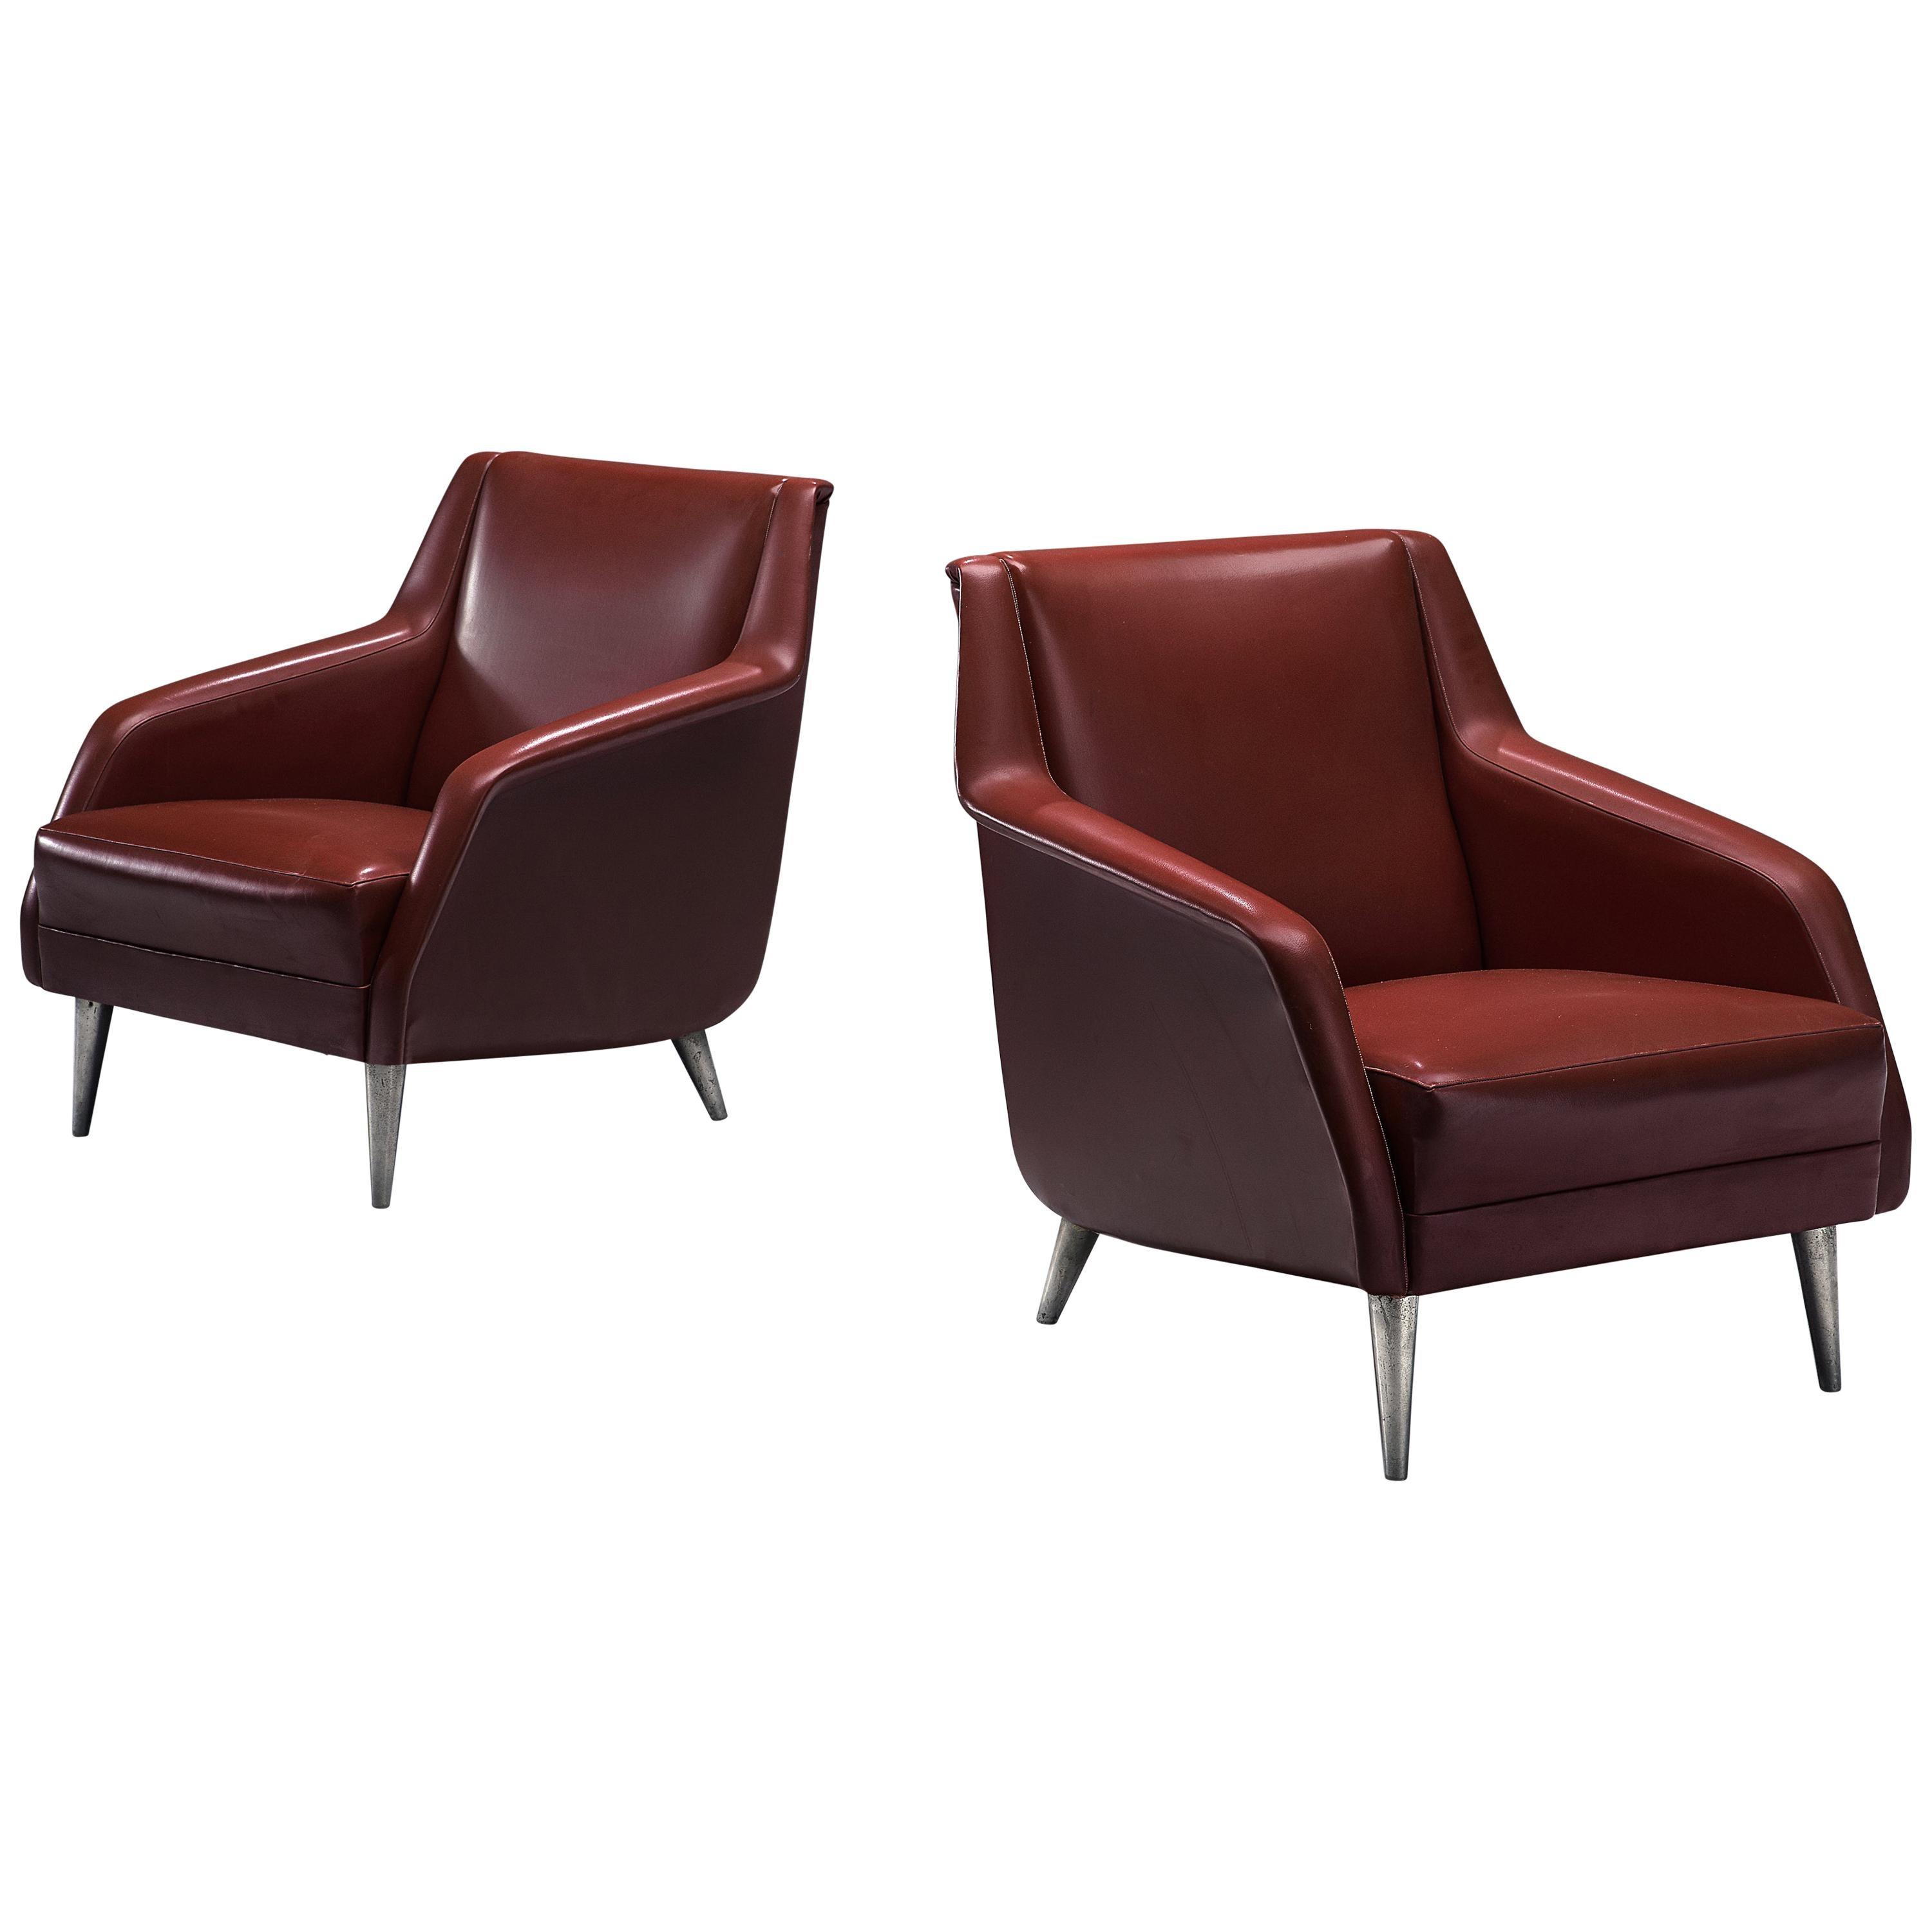 Carlo de Carli Pair of Lounge Chairs Model 802 in Red Leatherette